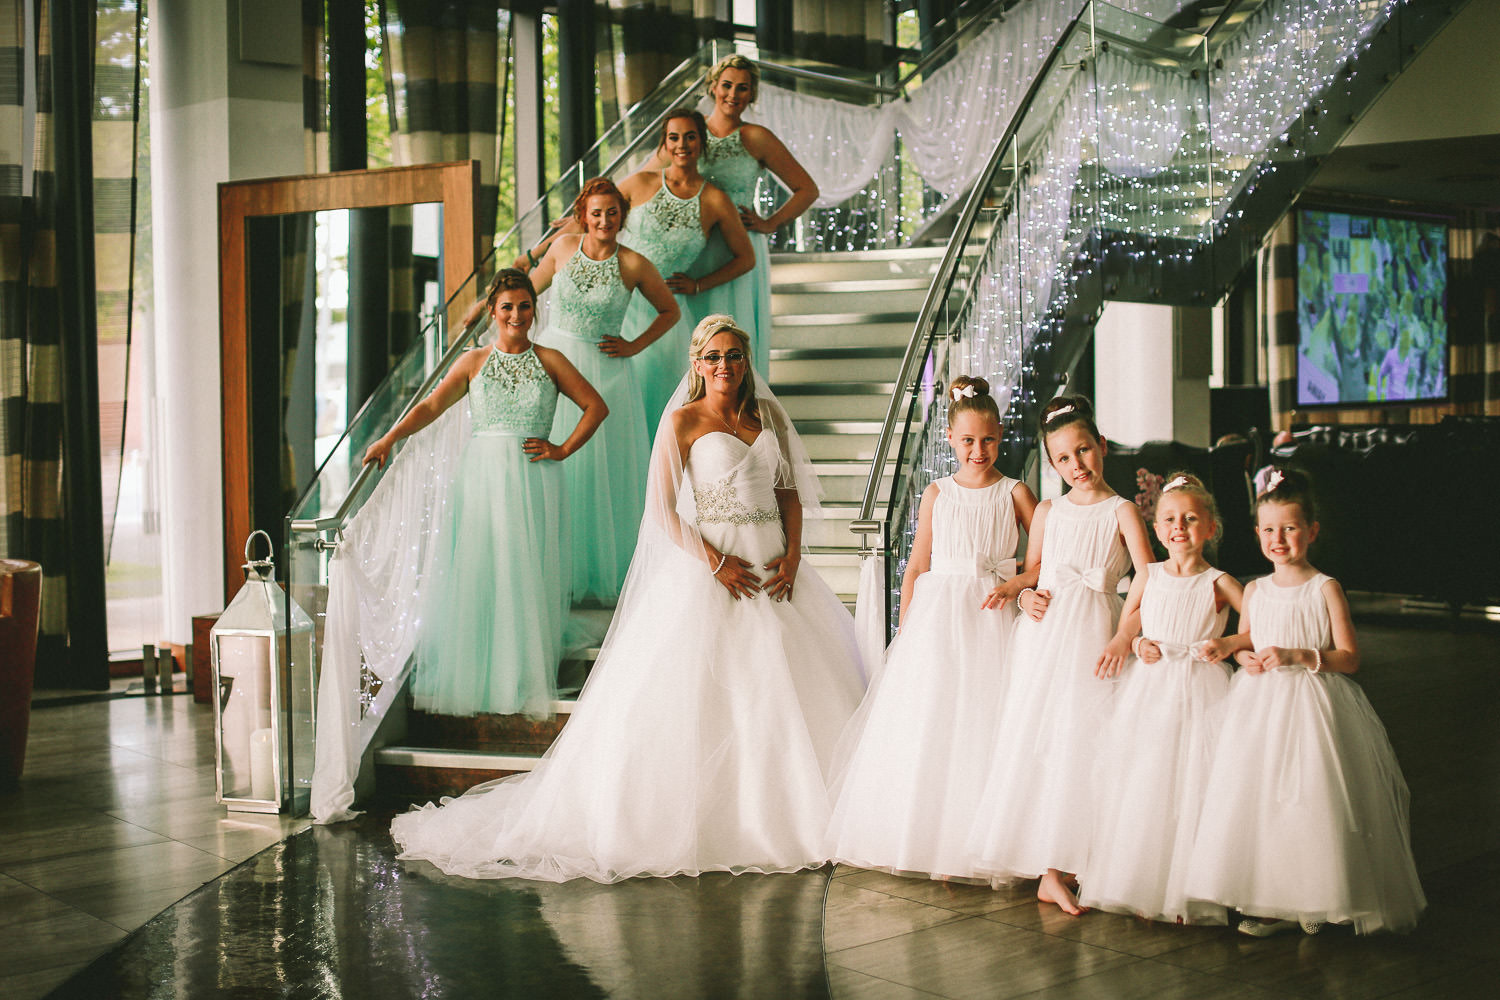 Bride and bridesmaids at steps Hilton Liverpool